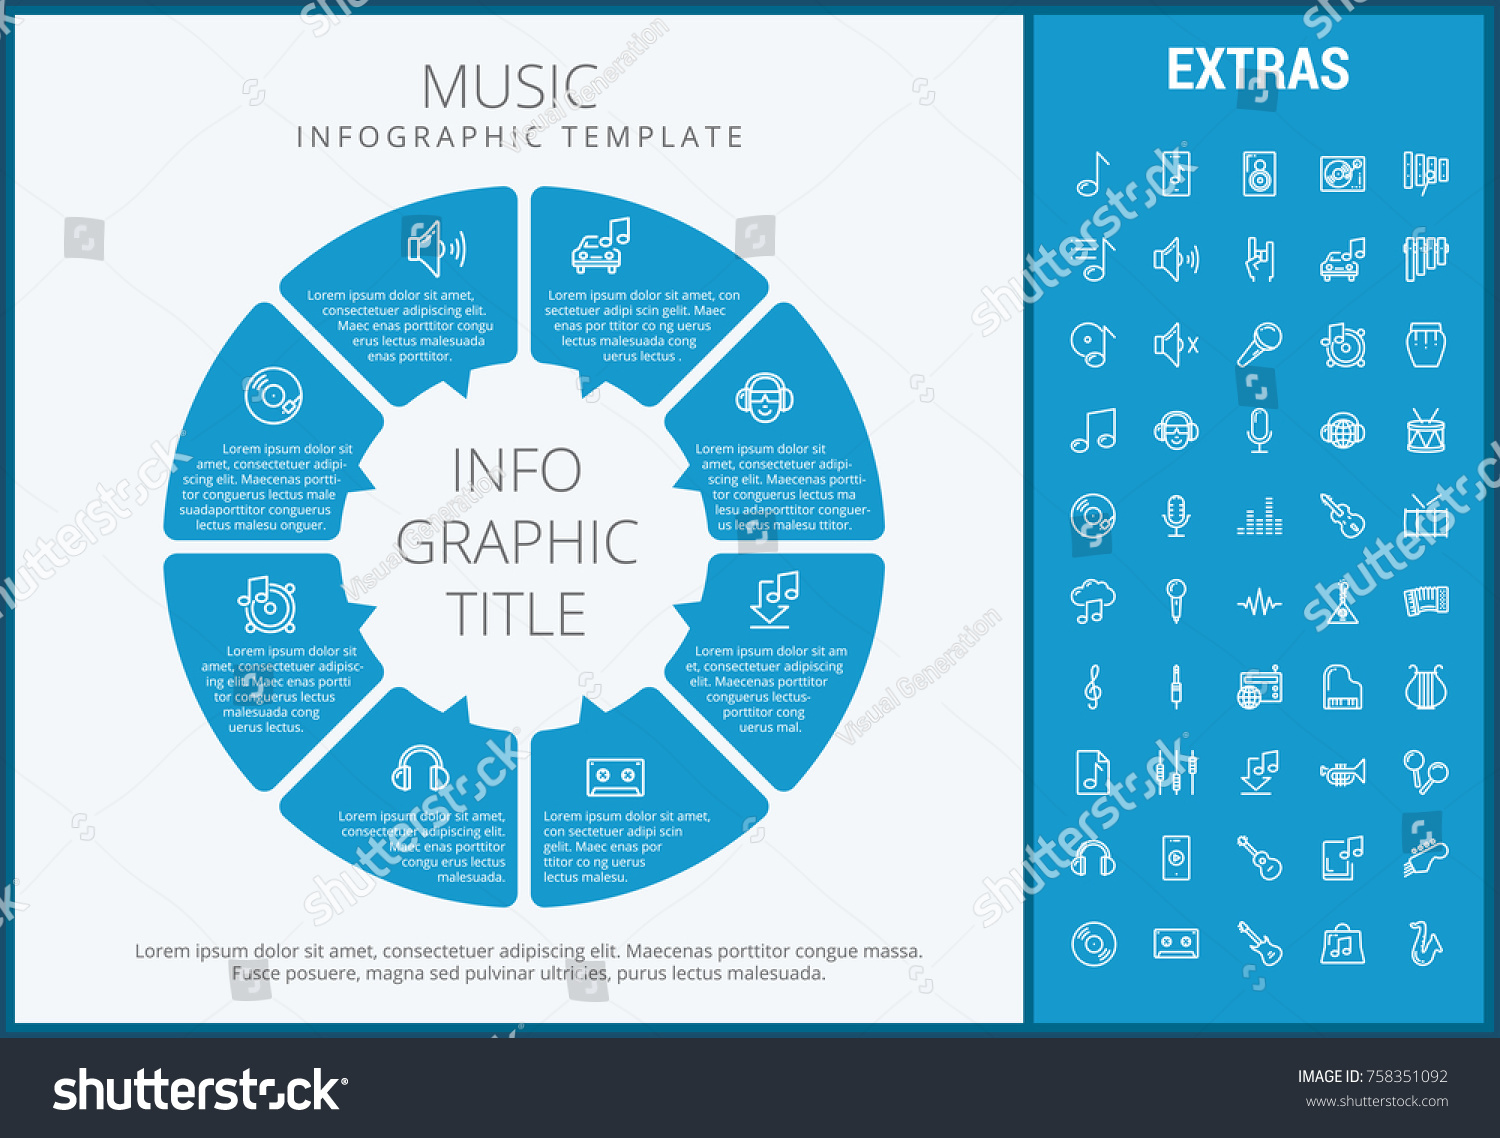 Music Infographic Template Elements Icons Infograph Stock Vector ...